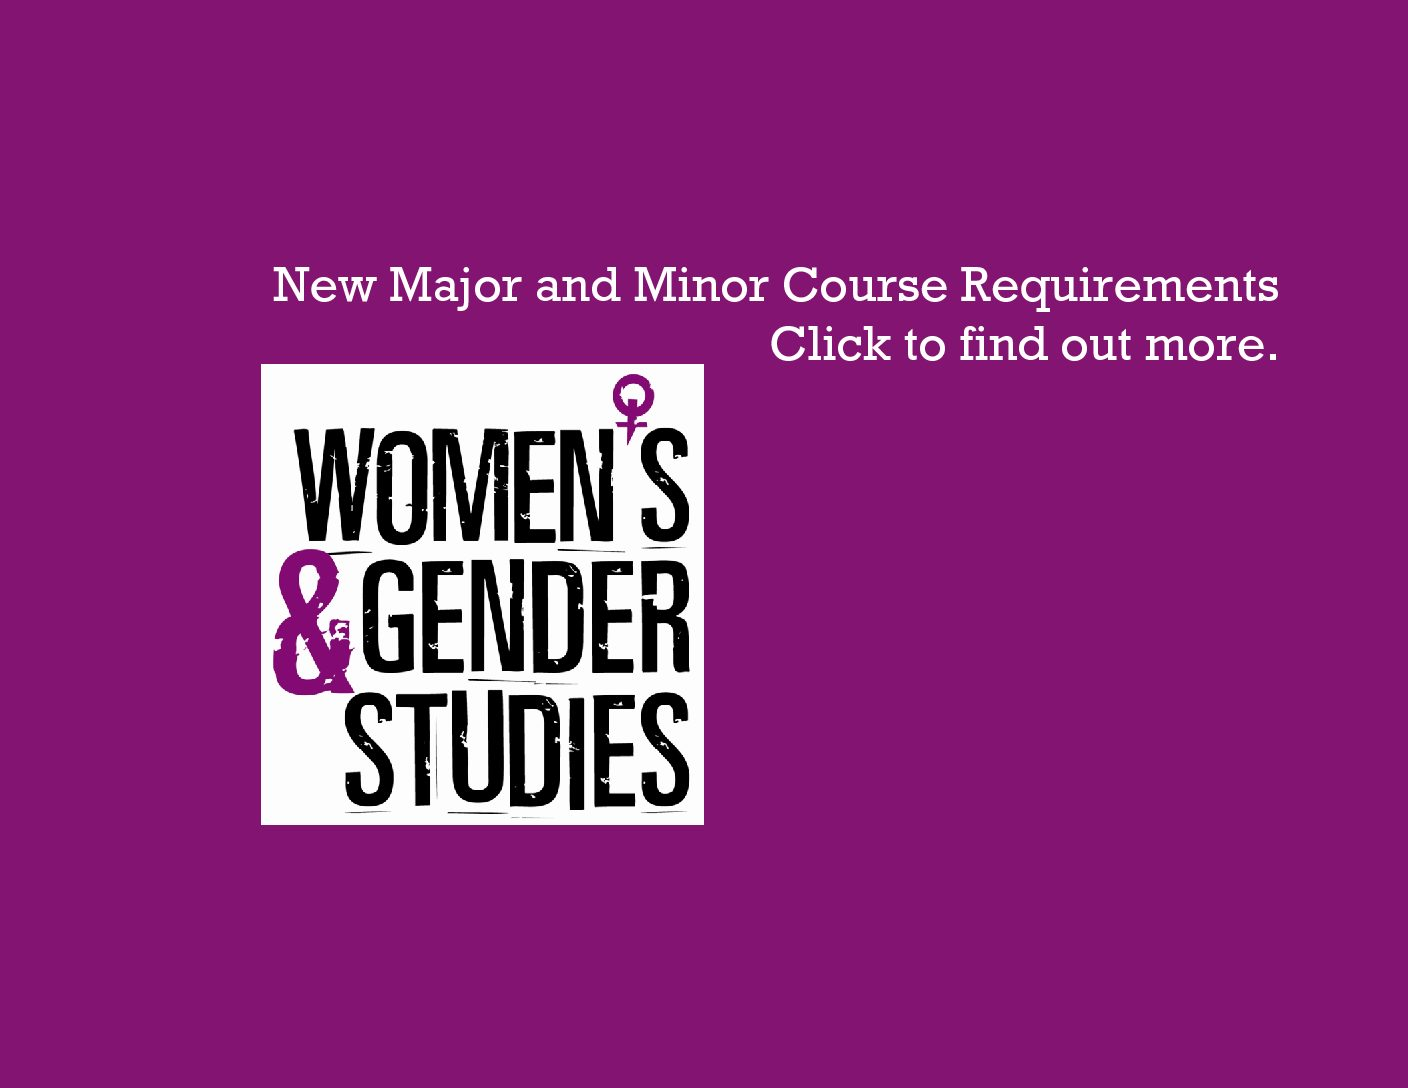 Approved courses for major/minor requirements